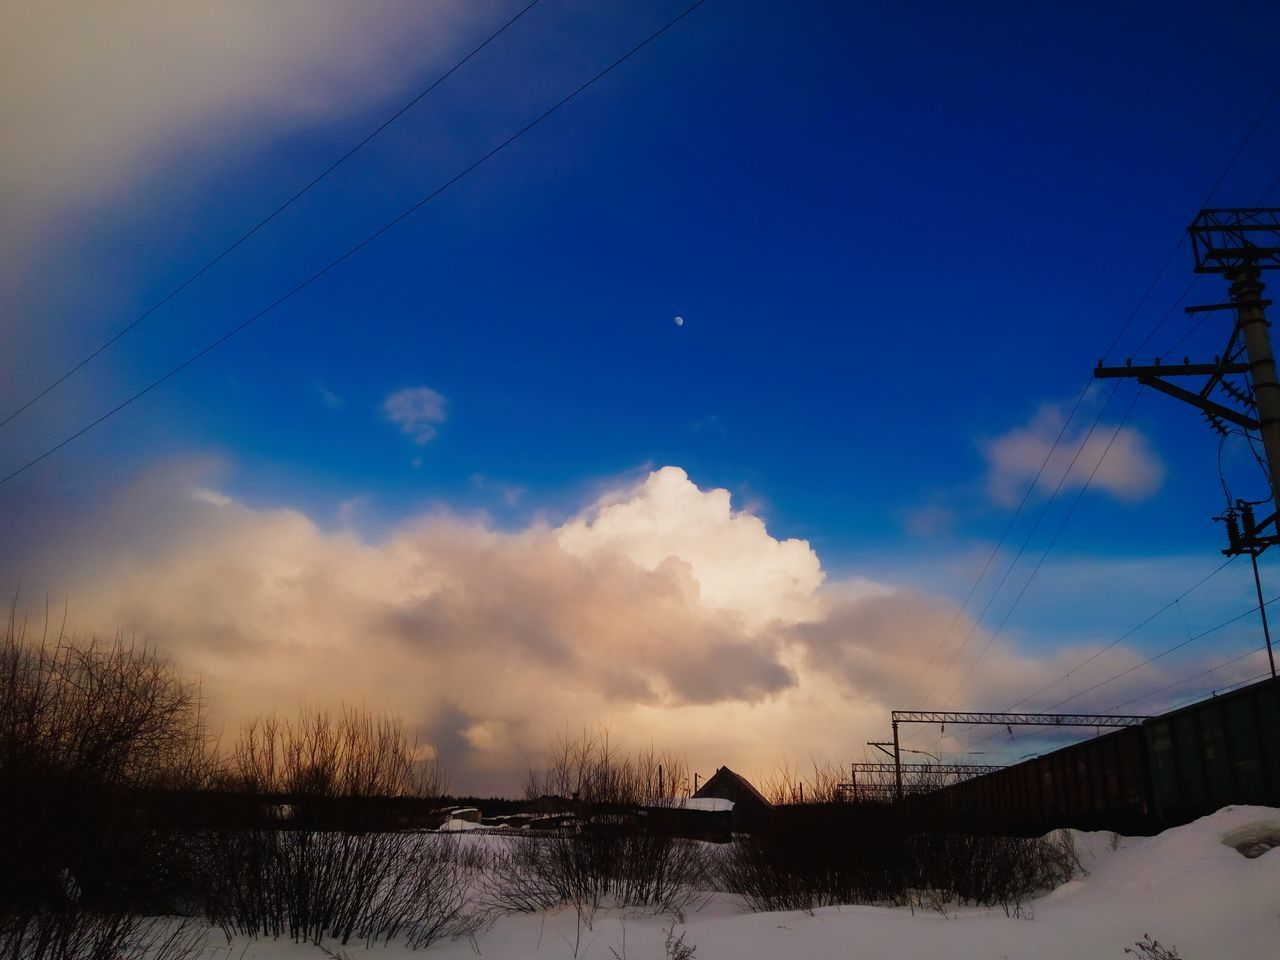 sky, winter, nature, cold temperature, beauty in nature, tranquil scene, snow, outdoors, cloud - sky, scenics, no people, tranquility, weather, connection, cable, architecture, built structure, silhouette, tree, sunset, building exterior, bare tree, lake, water, day, landscape, electricity pylon, vapor trail